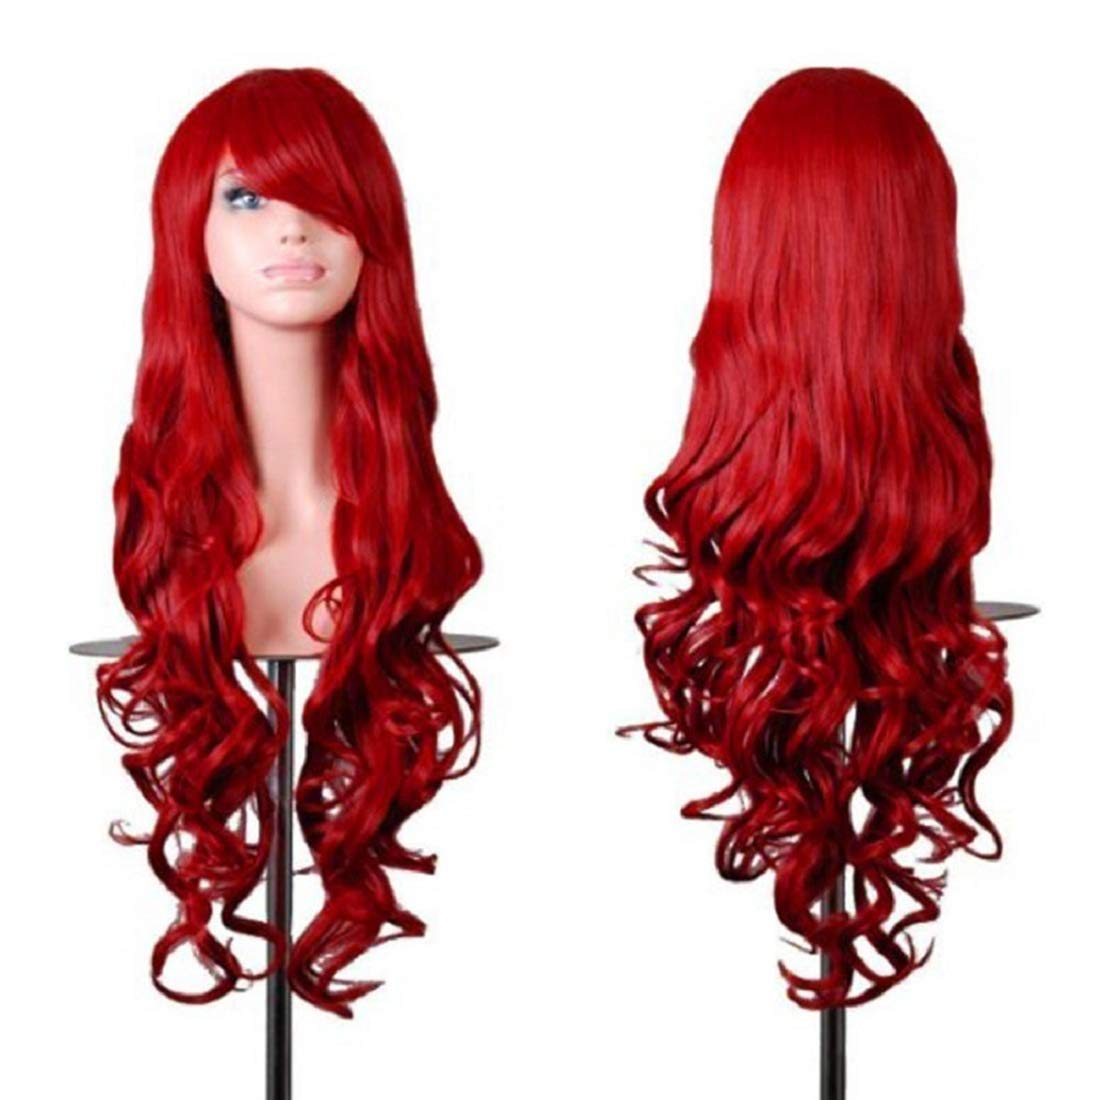 Rbenxia Wigs 32 Women Wig Long Hair Heat Resistant Spiral Curly Cosplay Wig Anime Fashion Wavy Curly Cosplay Daily Party Red